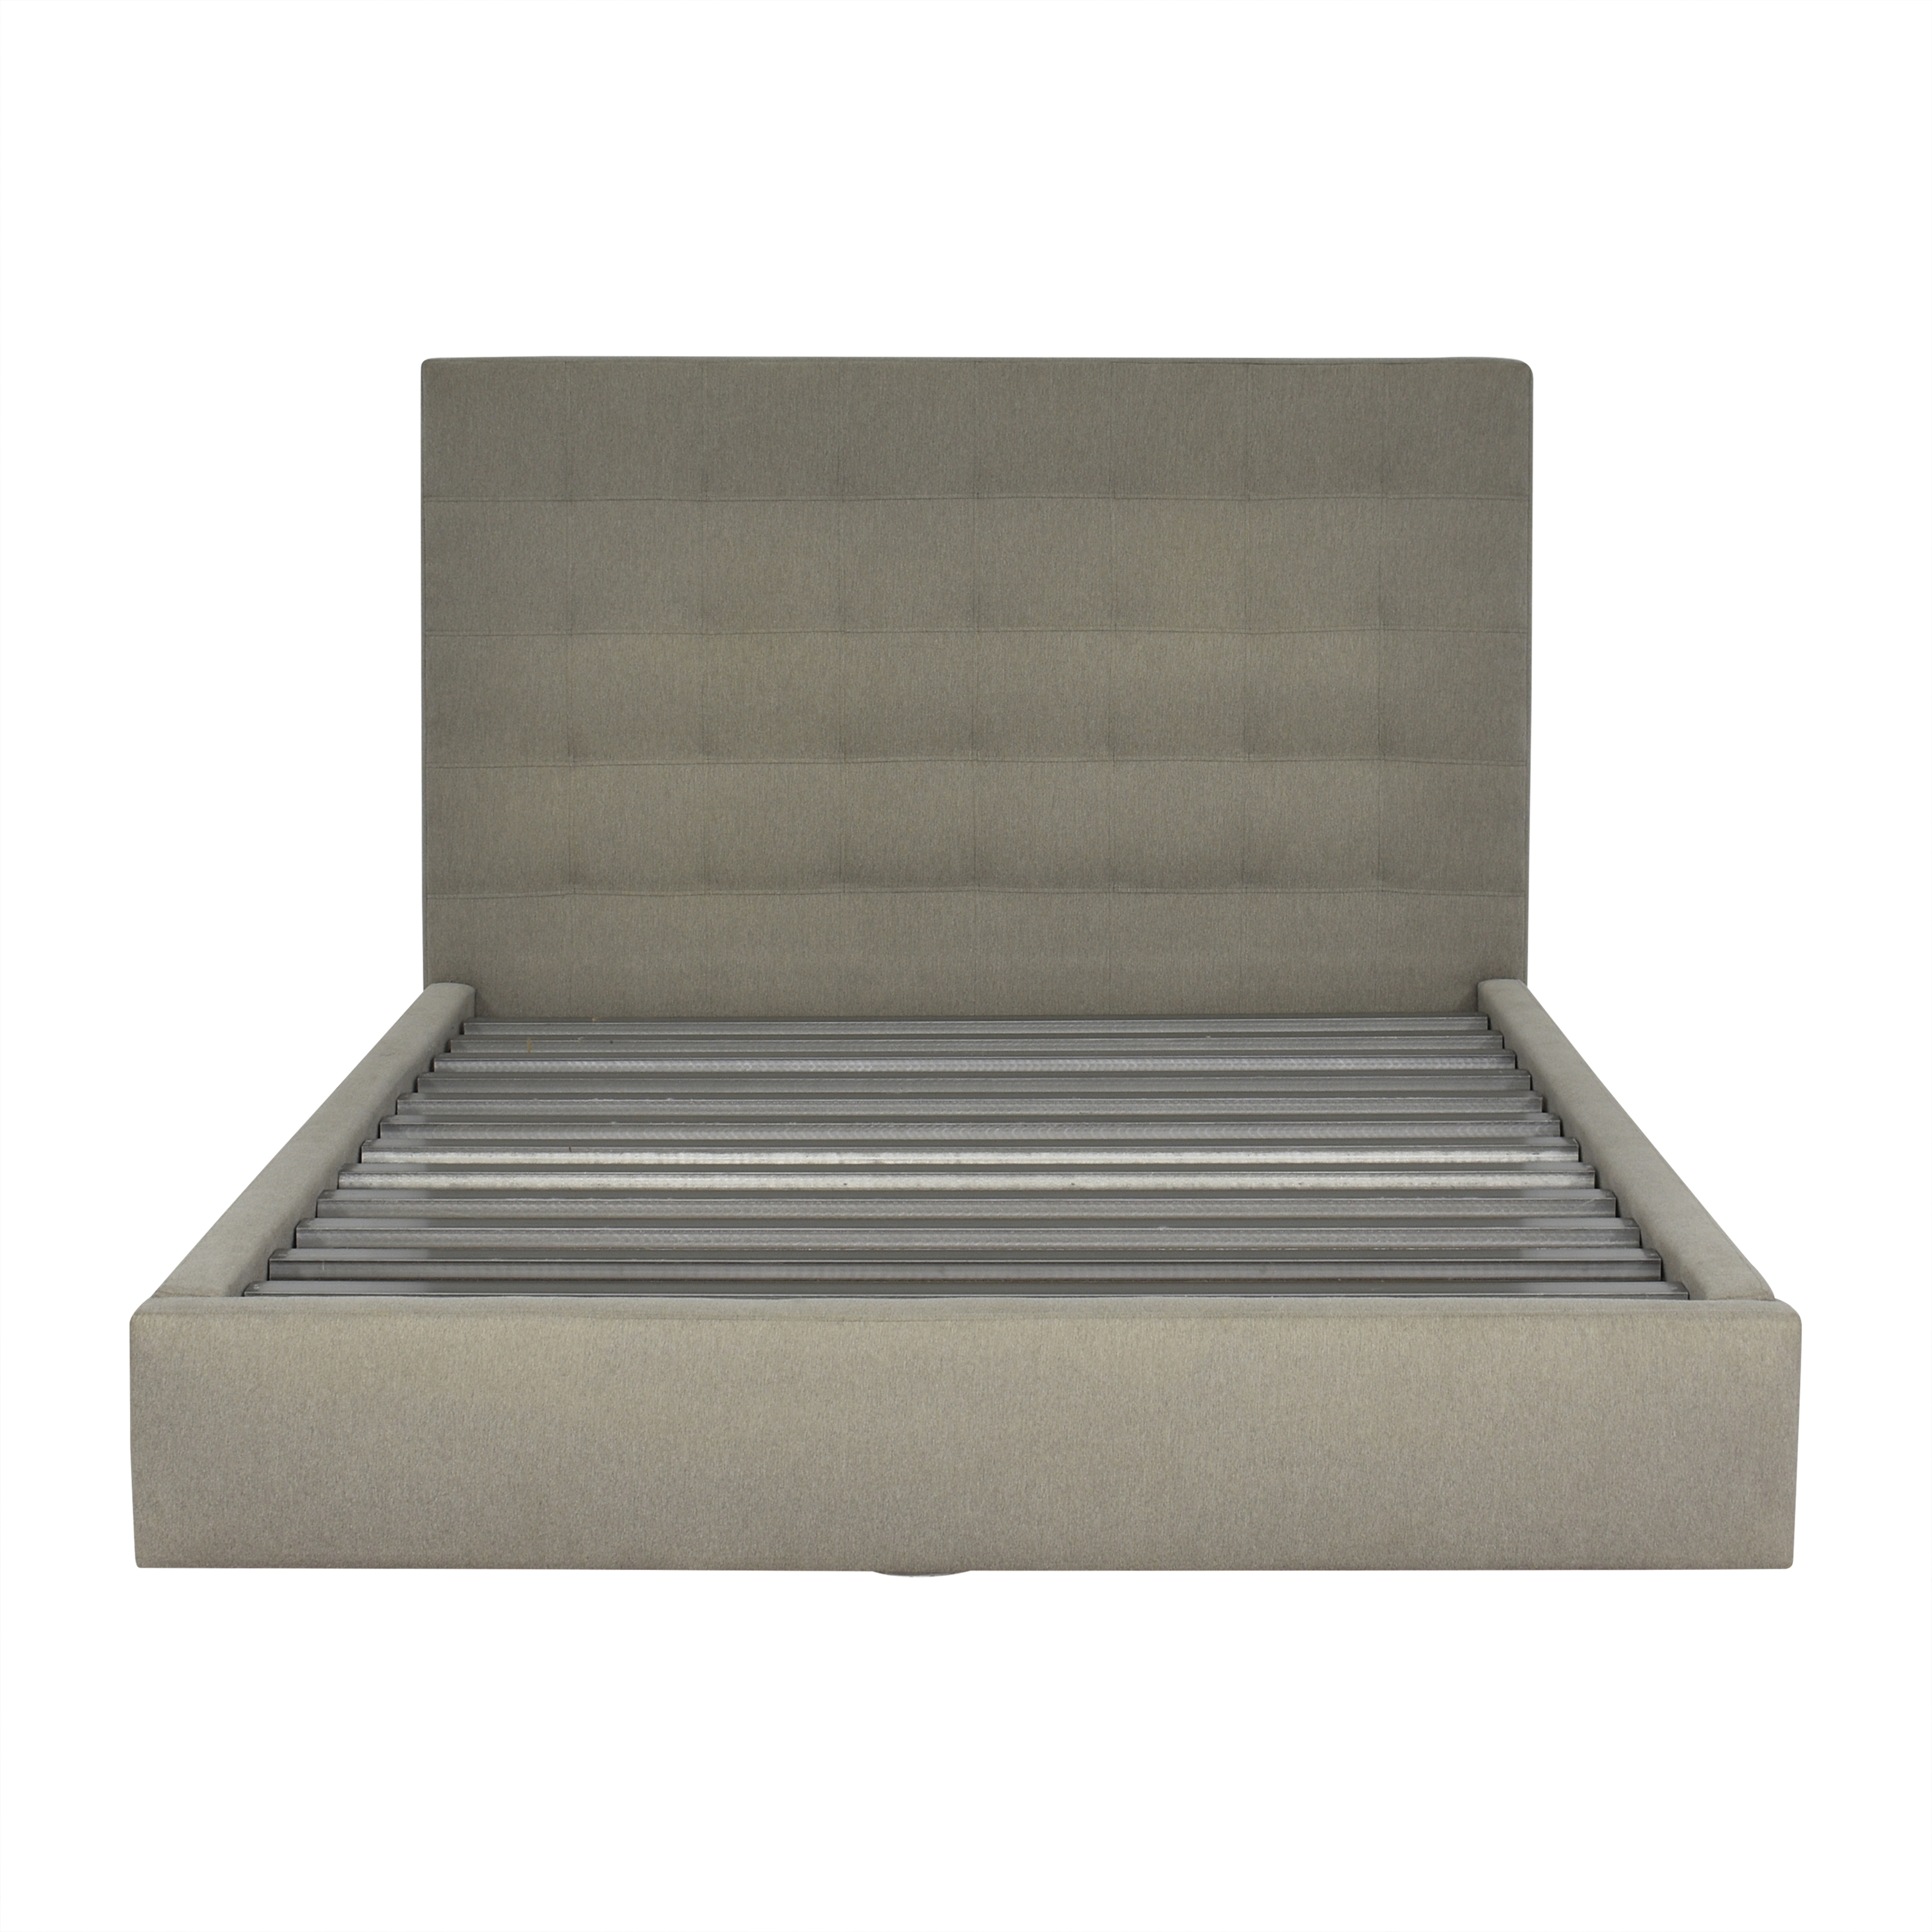 Room & Board Room & Board Avery Storage Queen Bed coupon